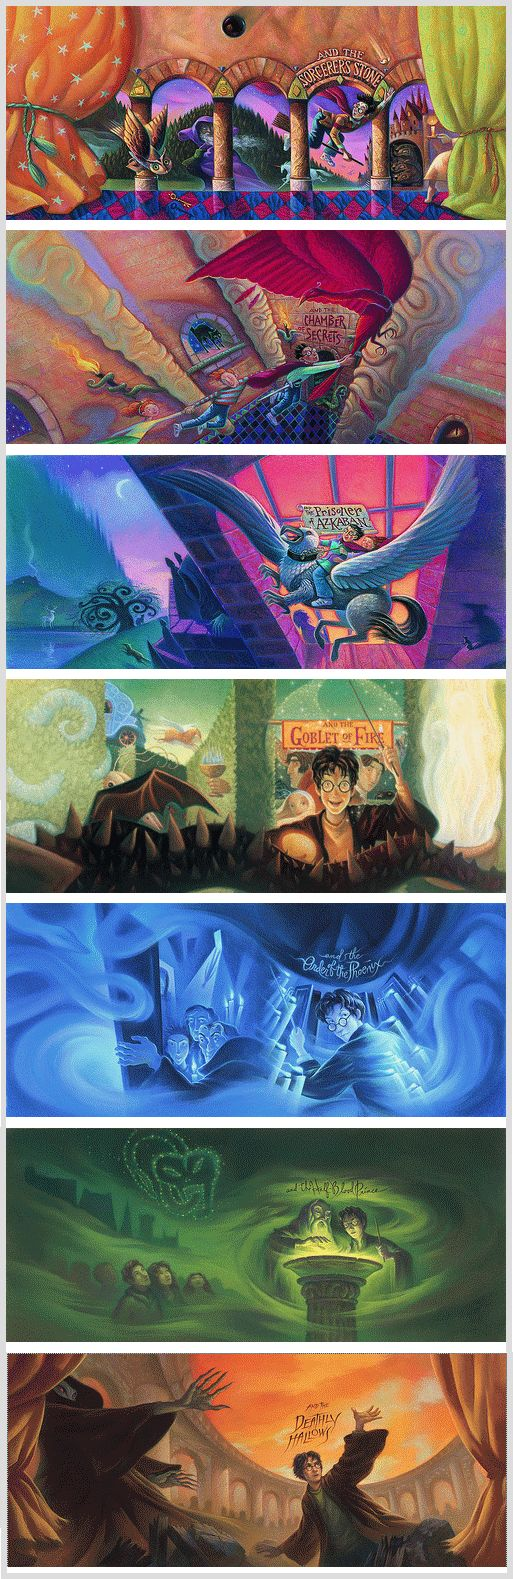 Harry Potter book covers by Mary GrandPré, original American editions ~ I love all the little details. I love it when they all make sense!